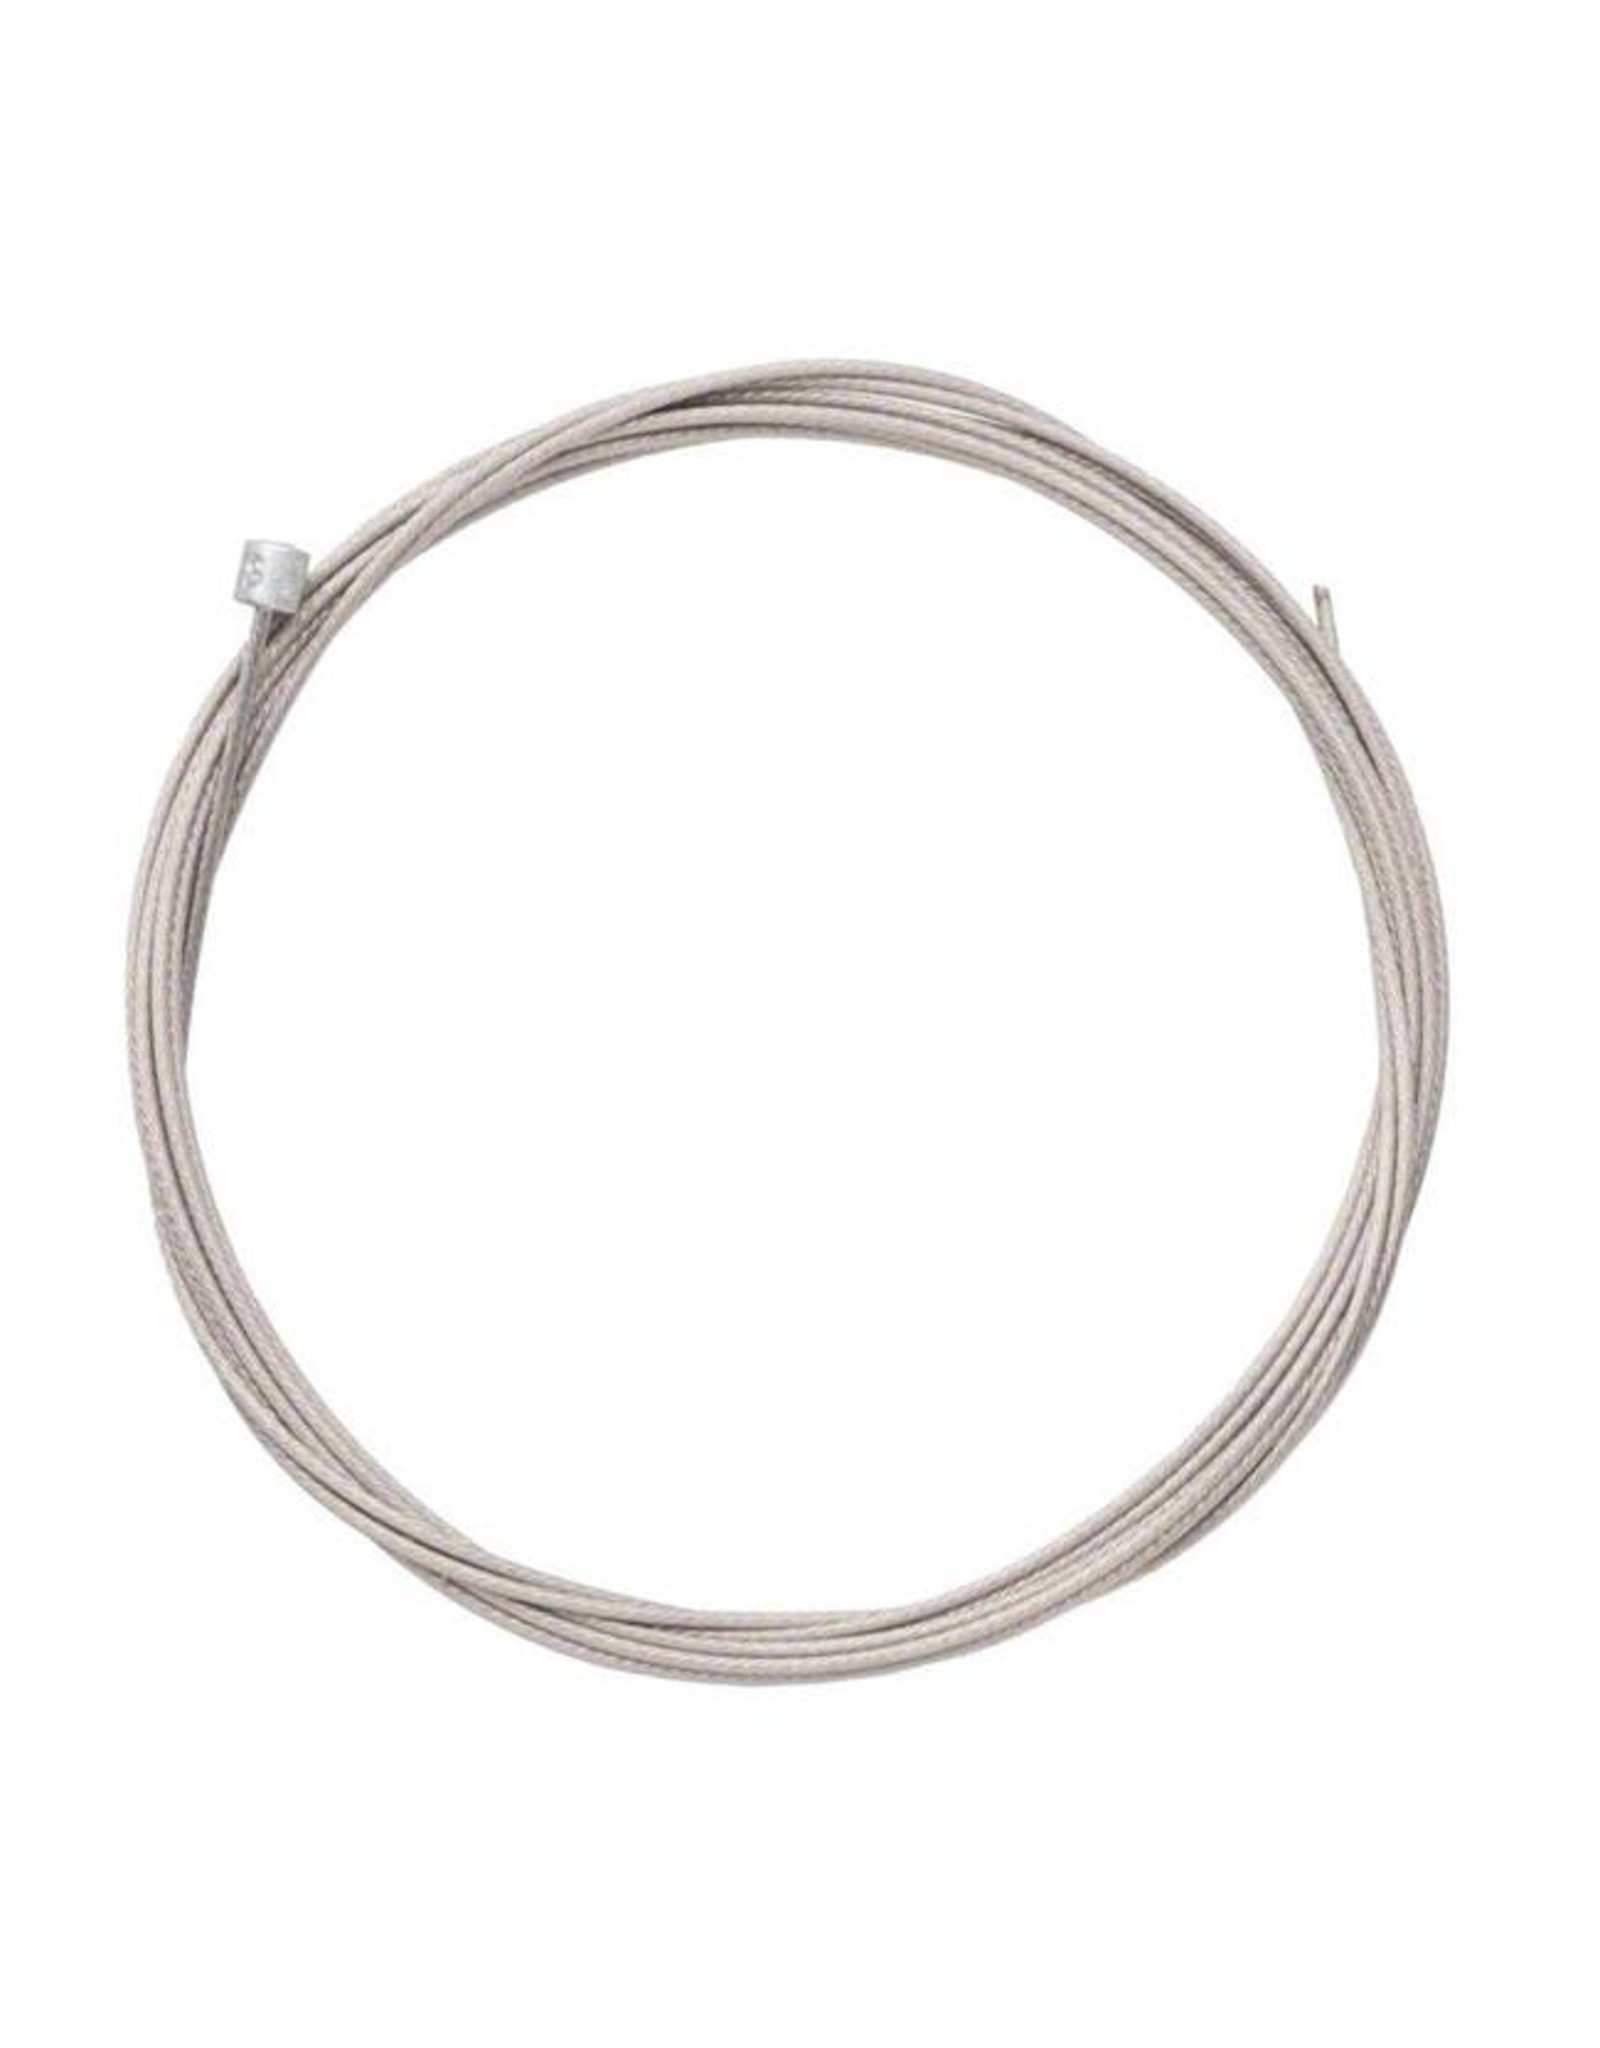 SRAM SRAM 1.1 x 2200mm Stainless Derailleur Cable